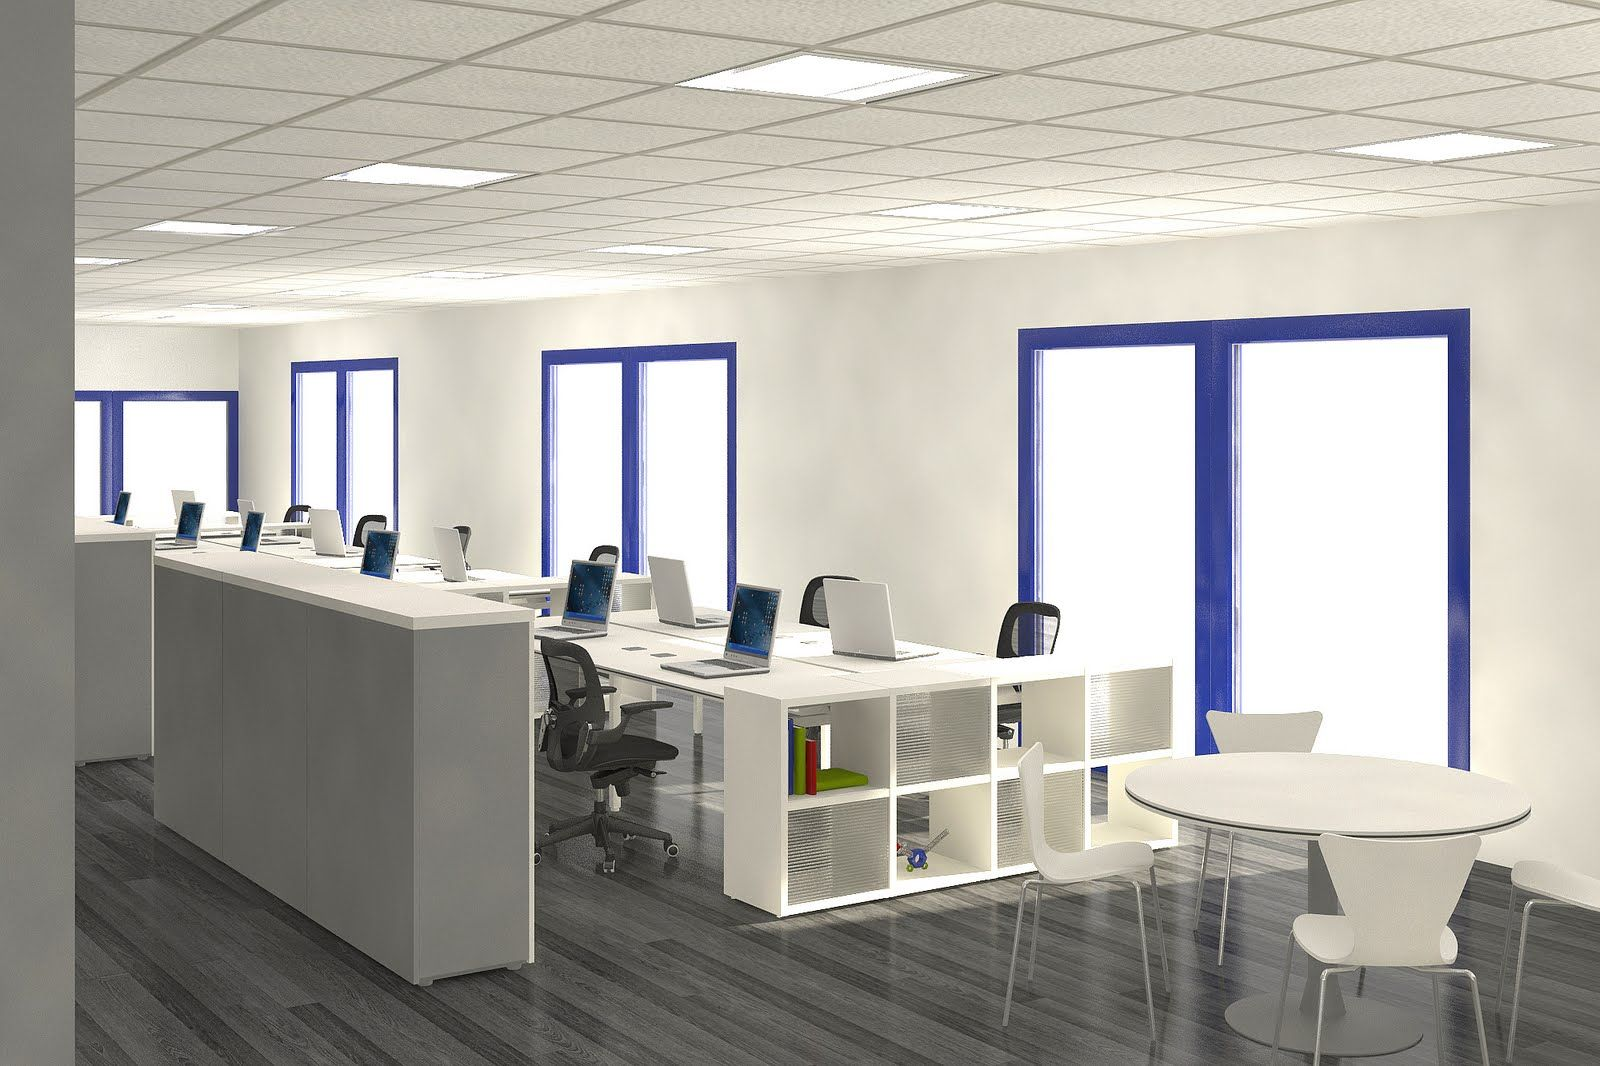 Office Interior Design Ideas fresh office interior design supportedbright theme and